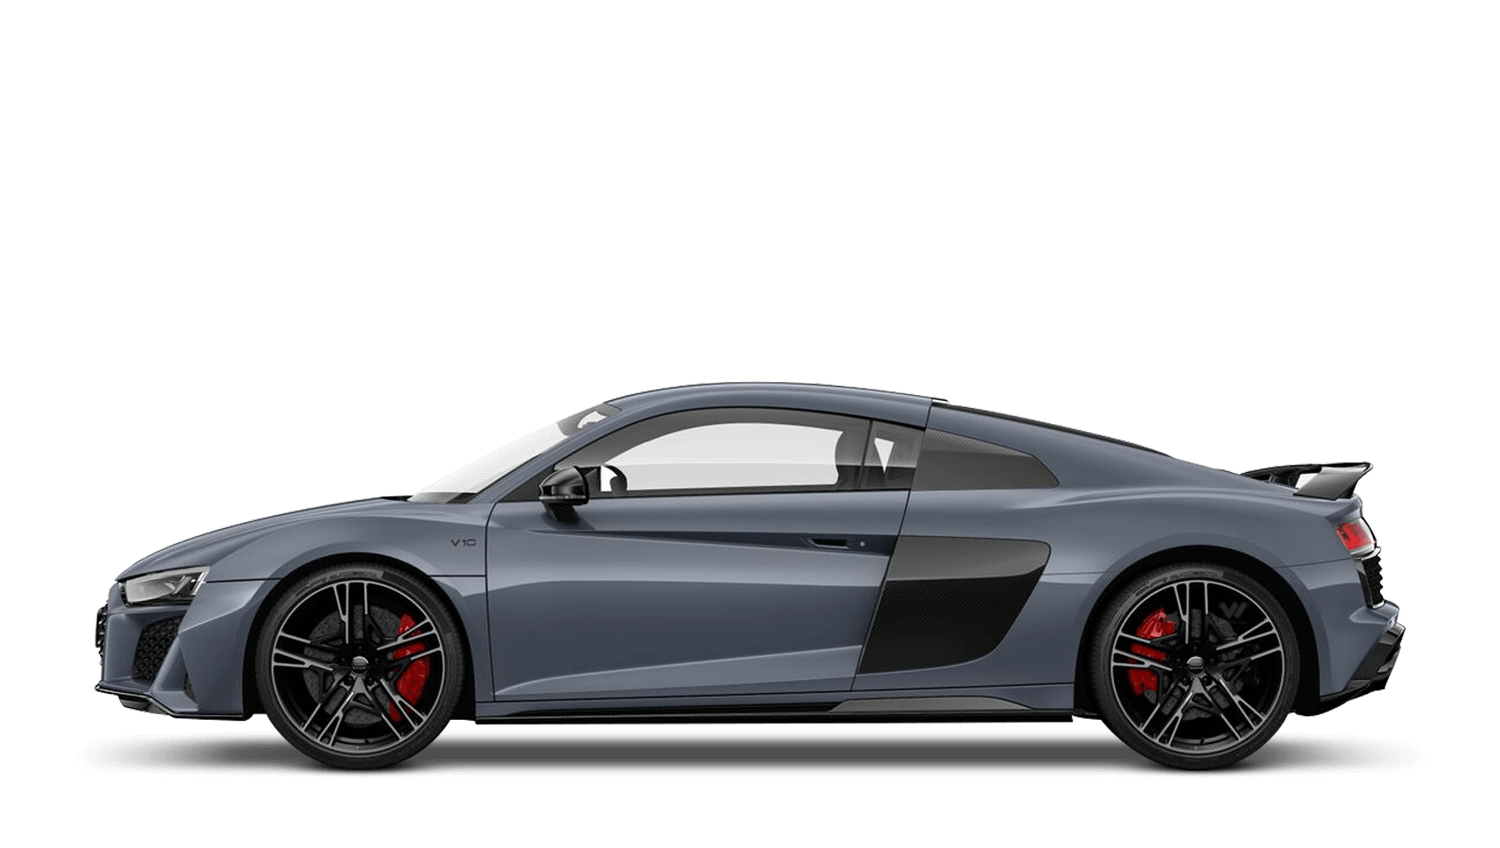 Kemora Grey (Metallic) Audi R8 Coupé